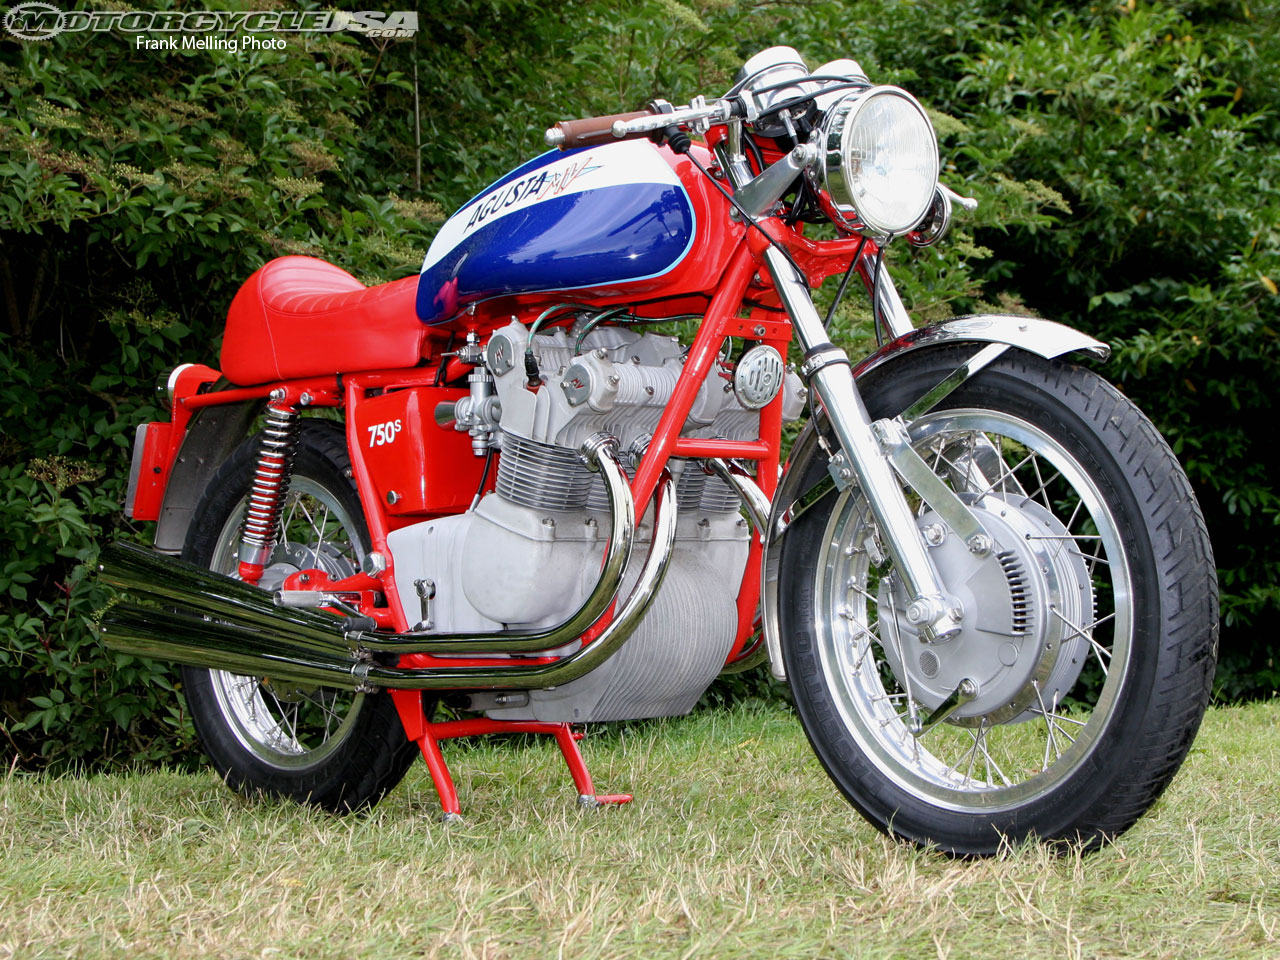 MV Agusta 750 S 1975 images #113333